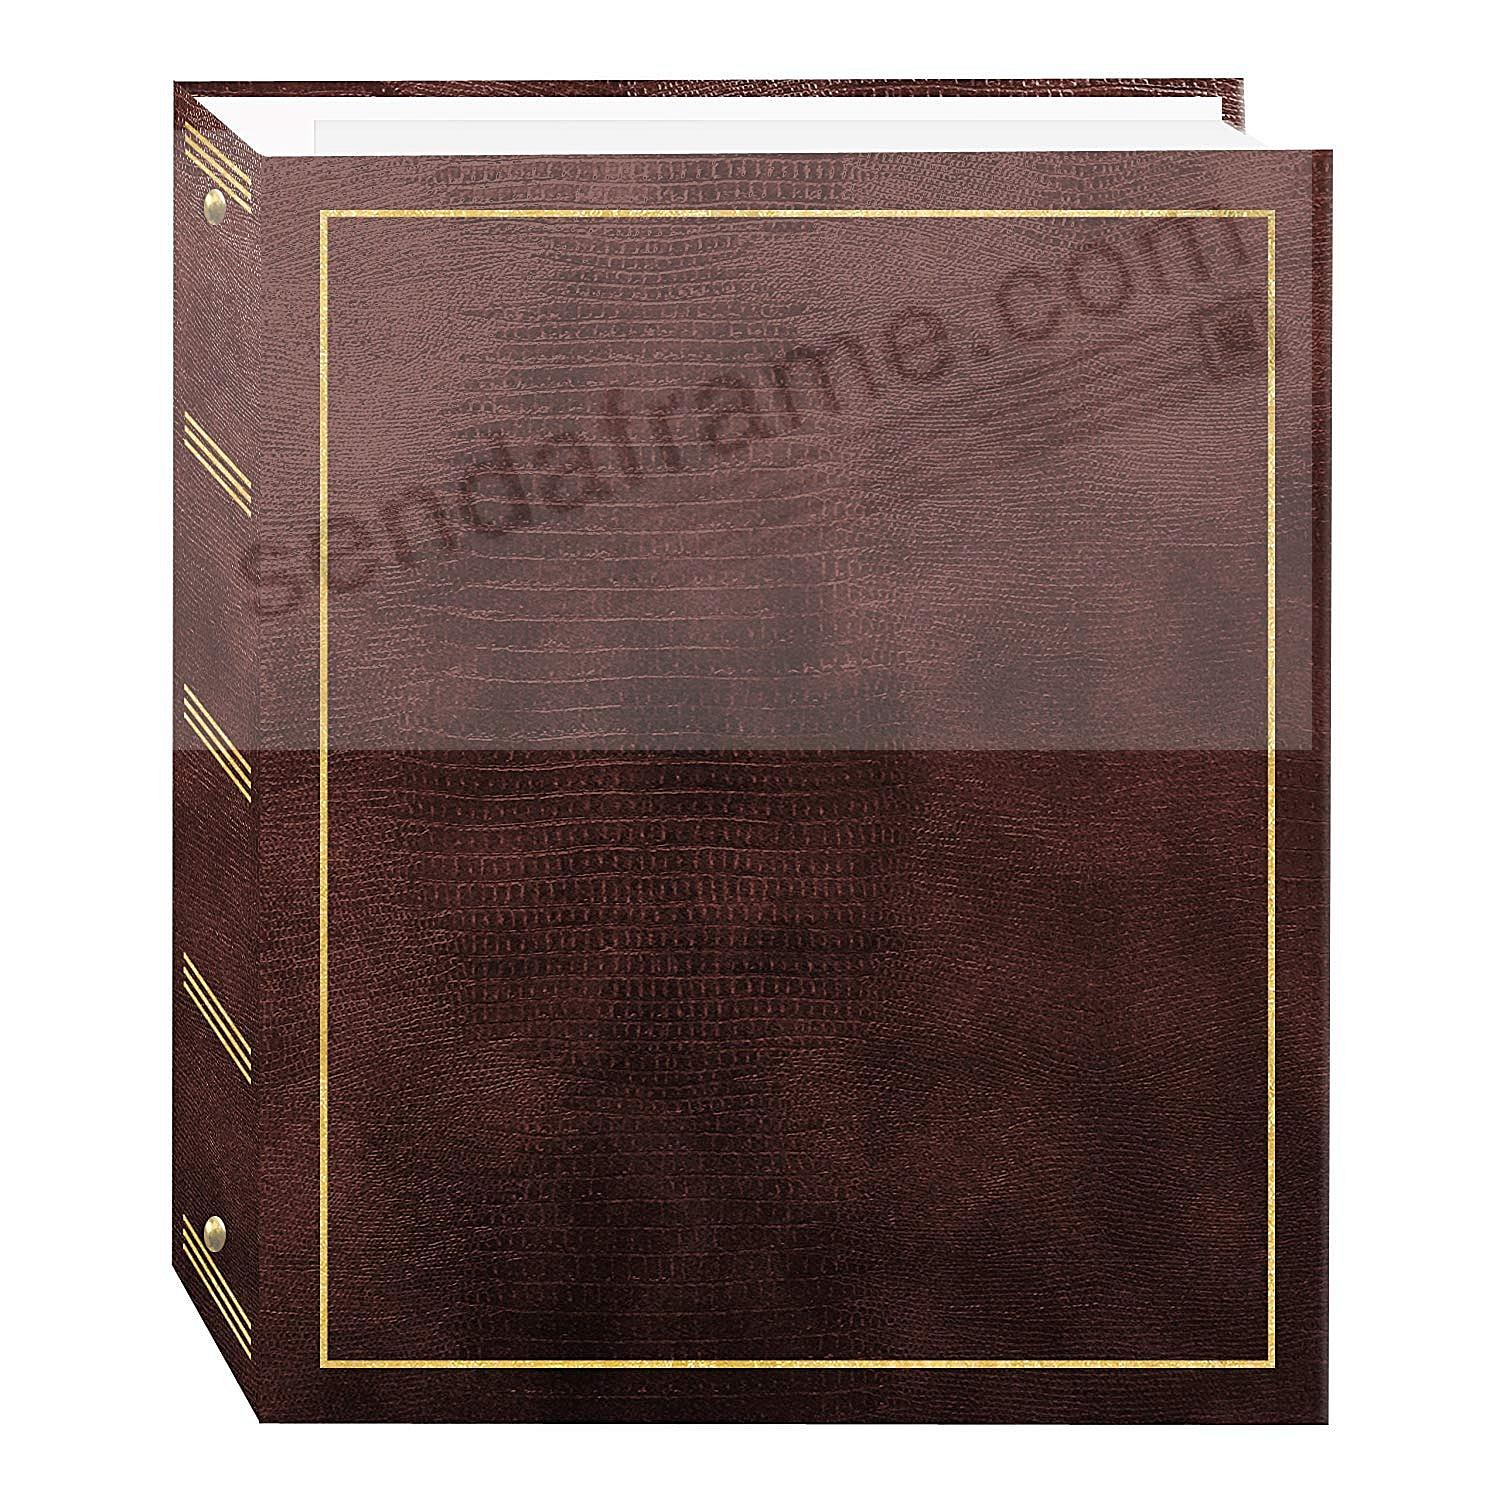 BROWN 3-ring album<br>w/EZ-stick magnetic pages